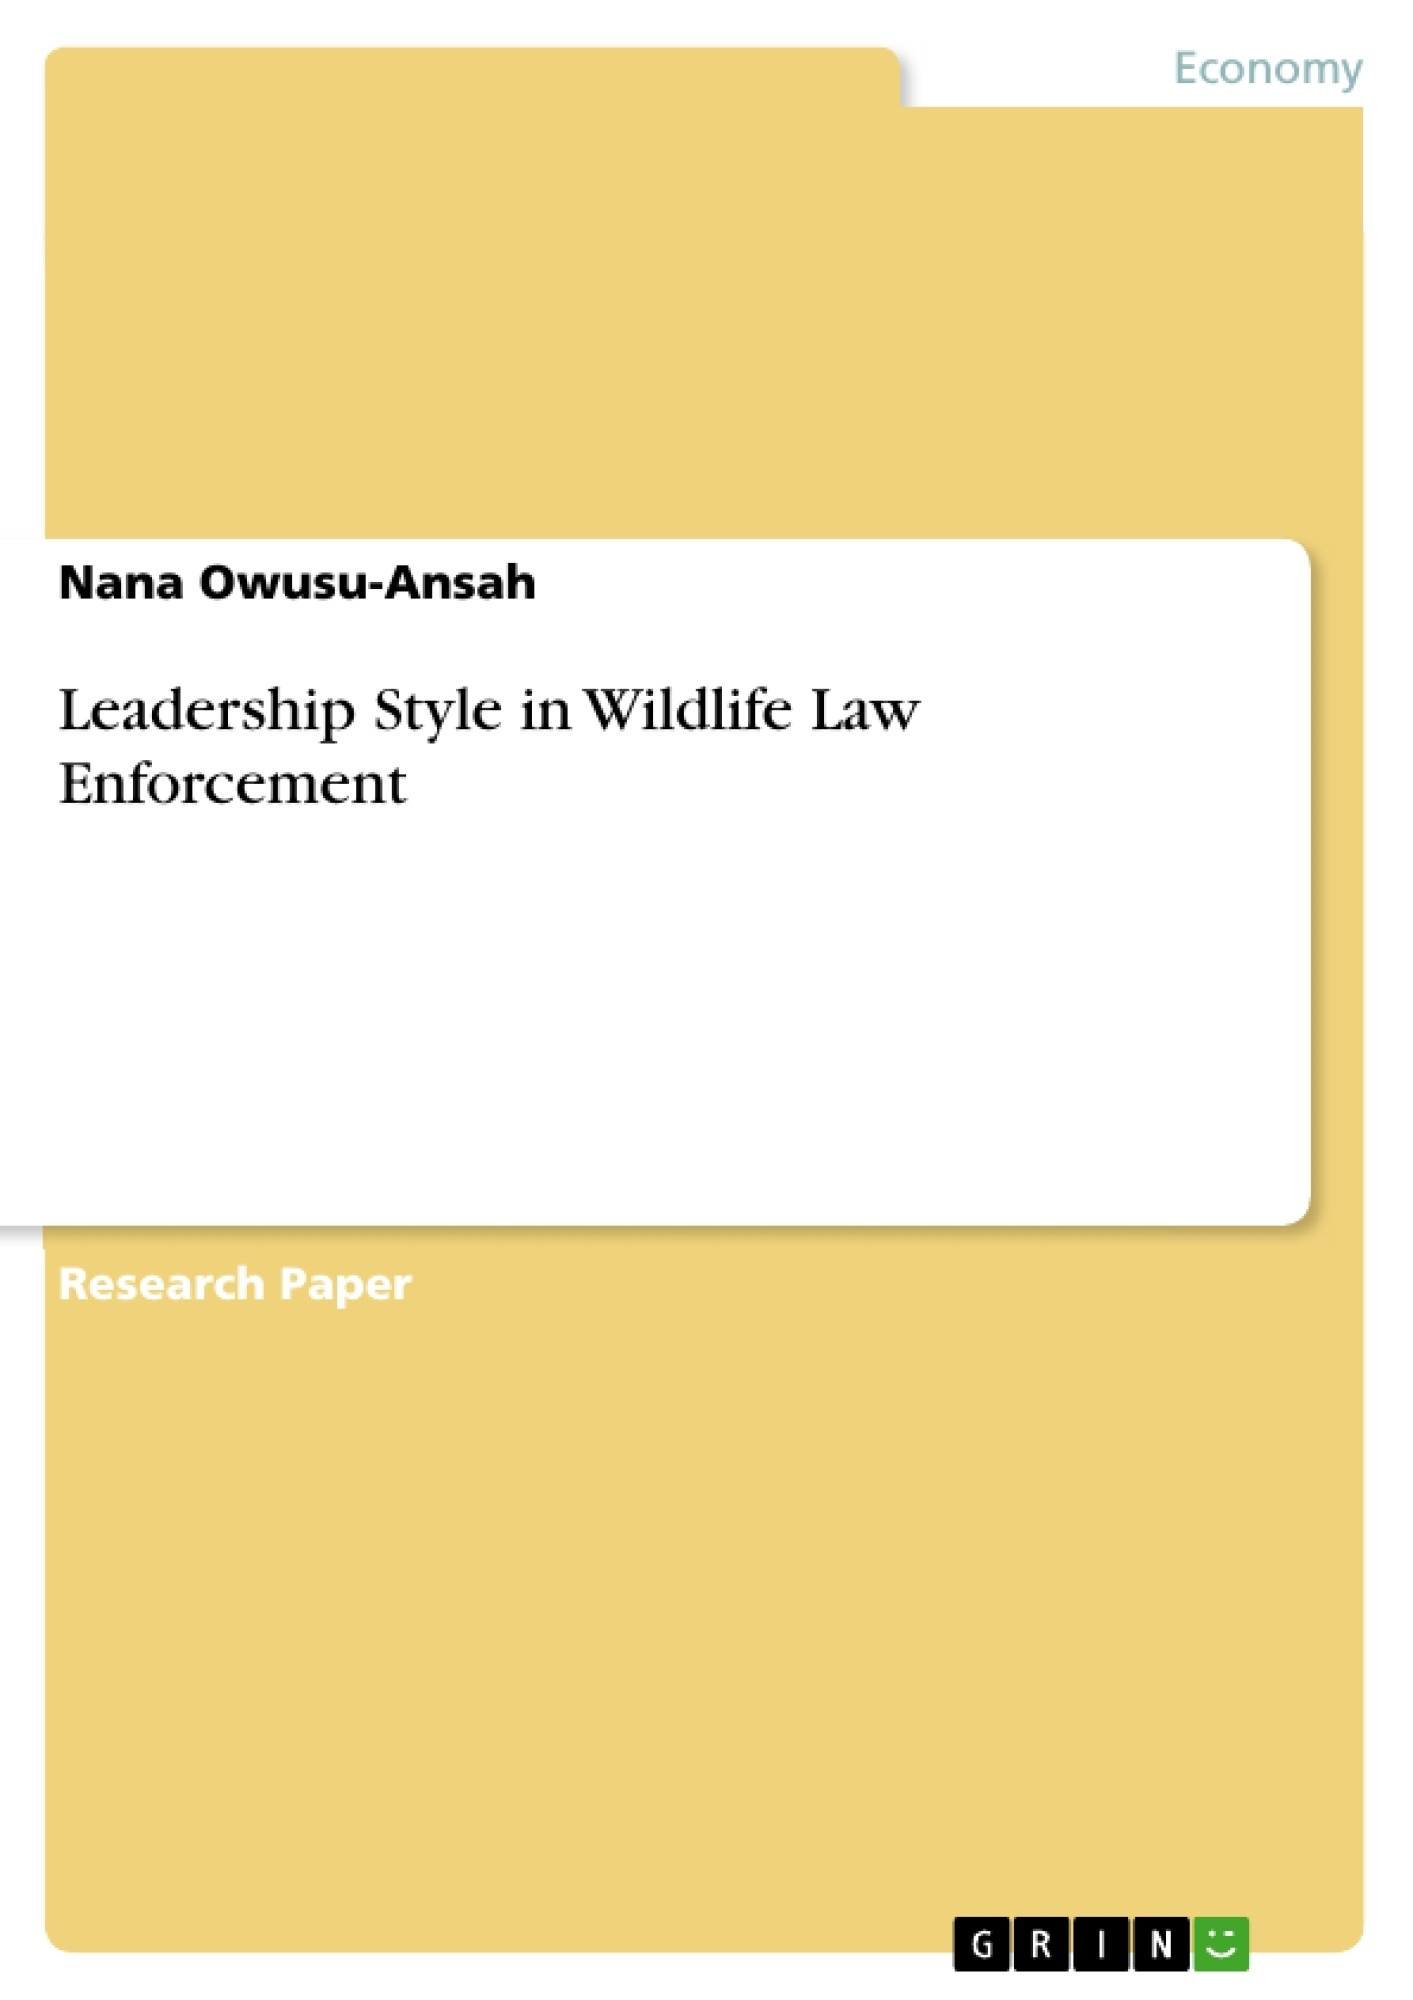 Title: Leadership Style in Wildlife Law Enforcement